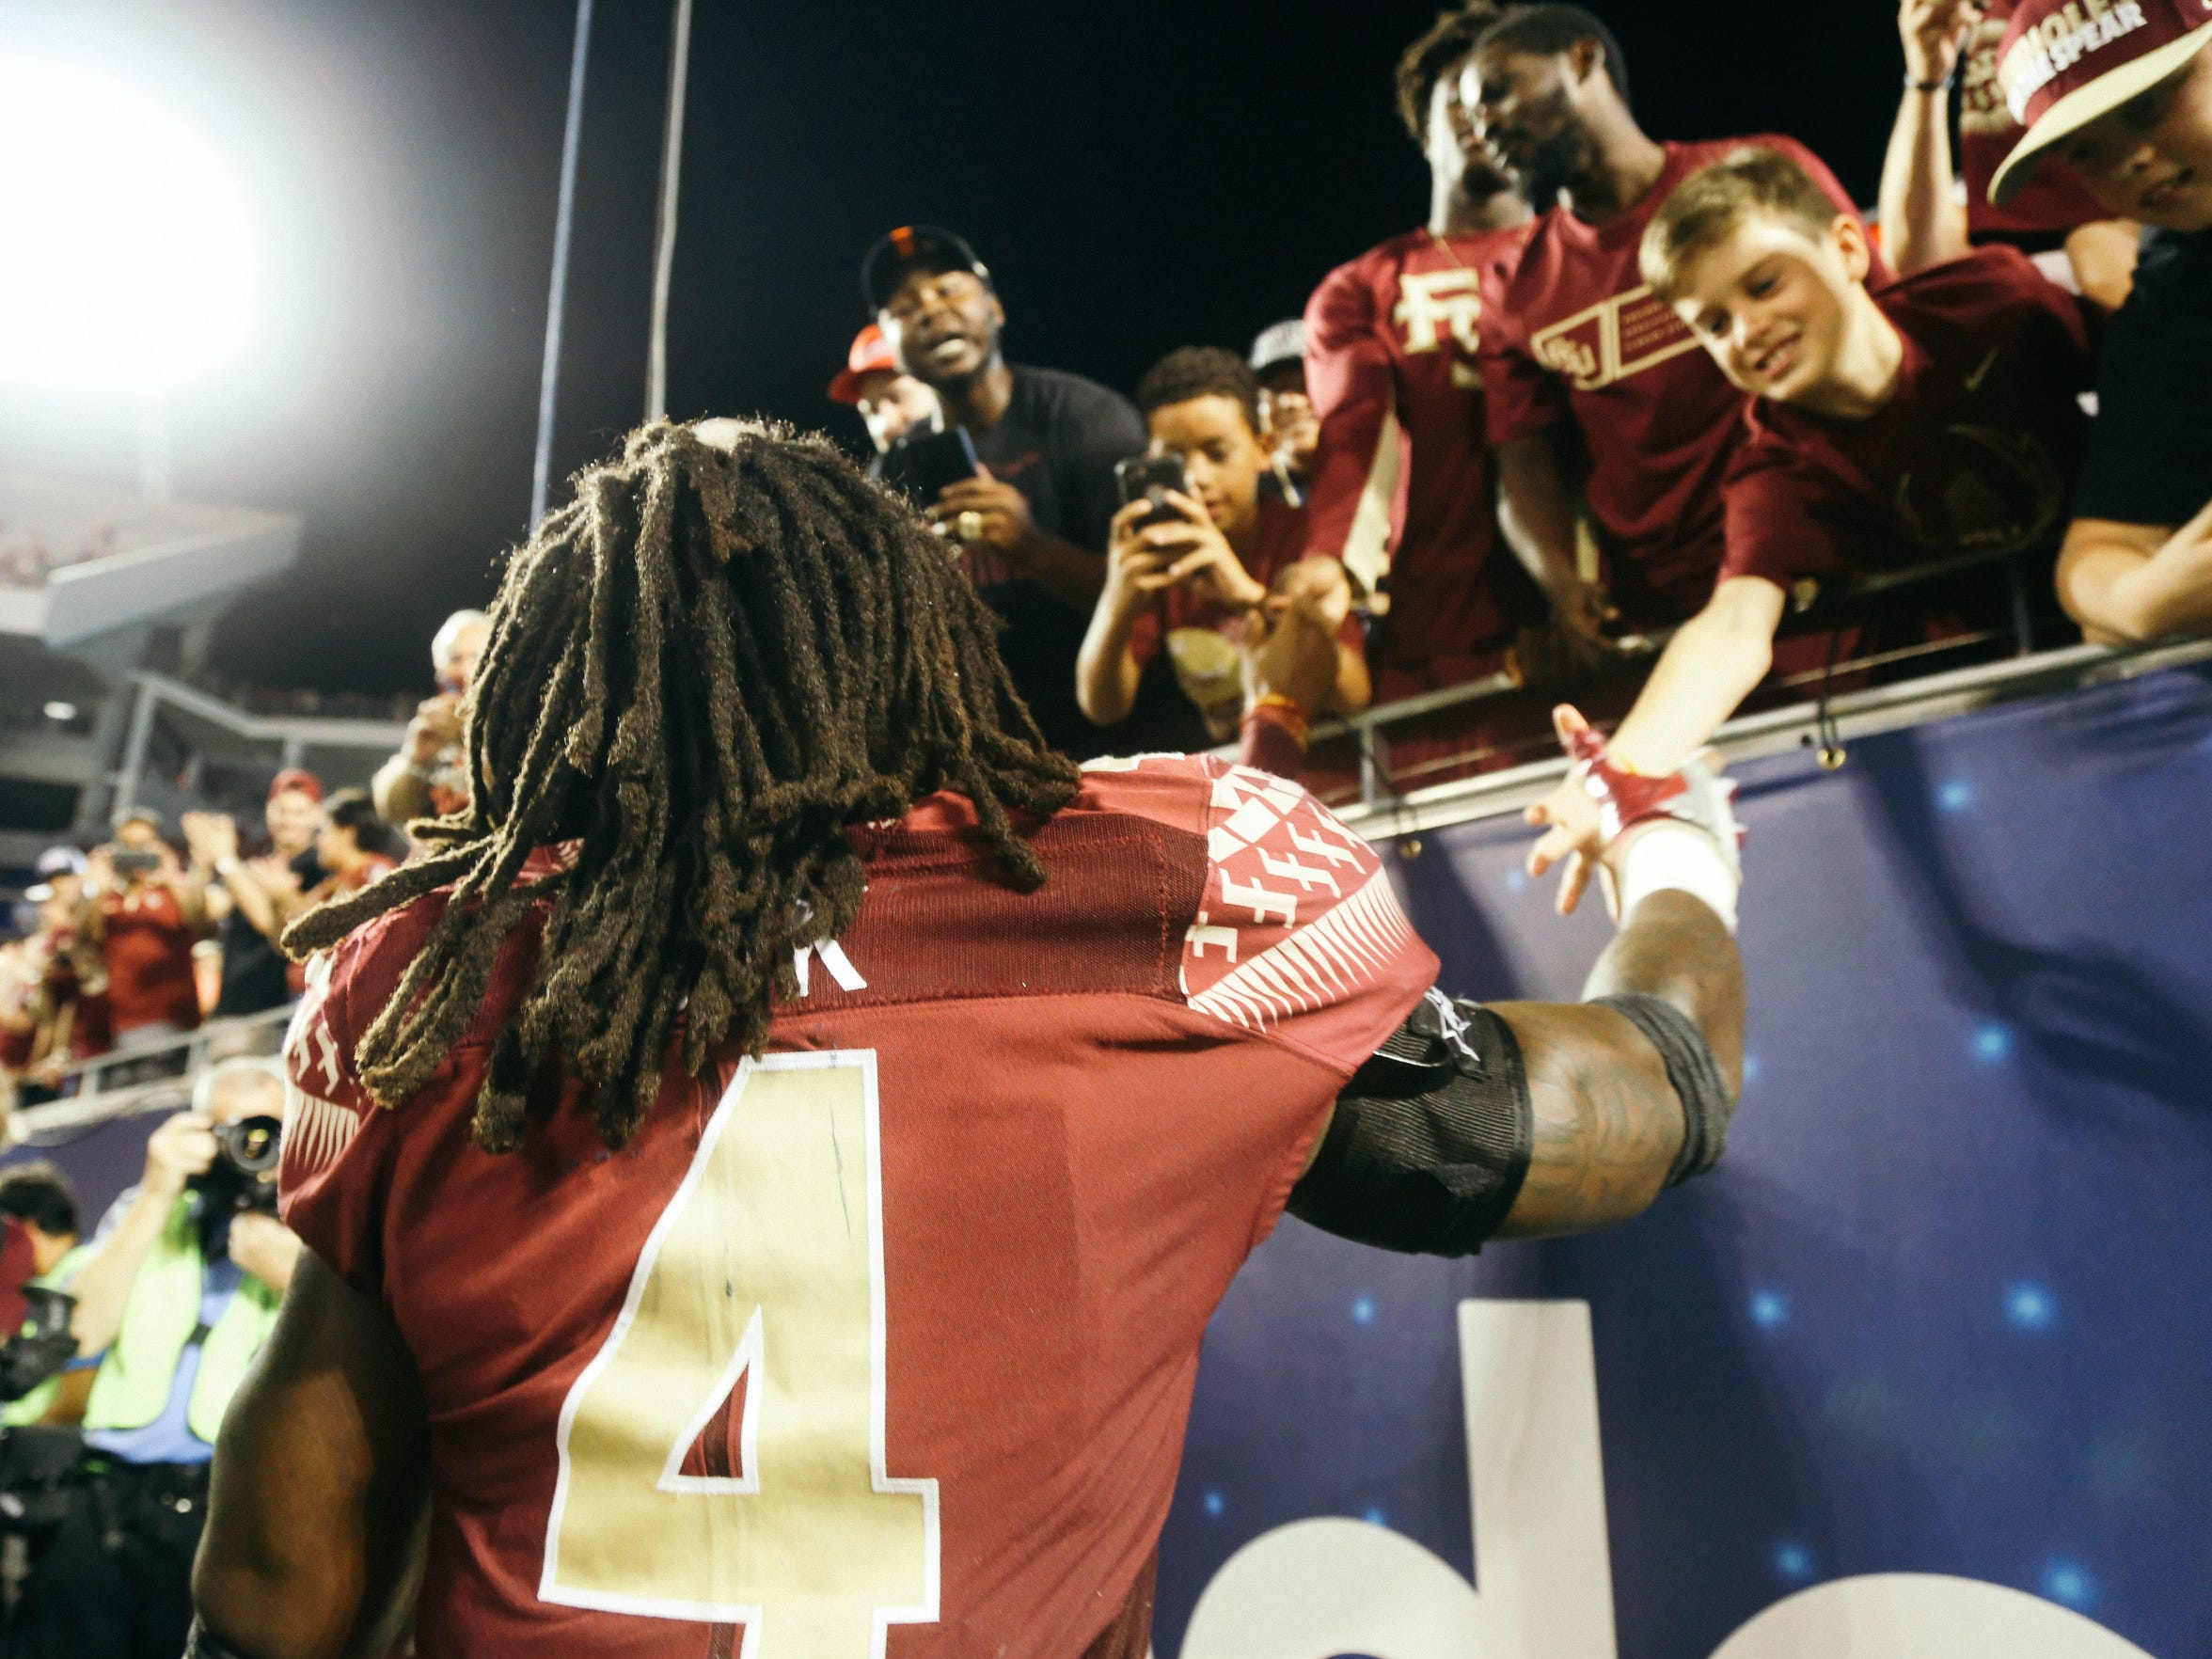 Dalvin Cook celebrates with fans after FSU's 45-34 win over Ole Miss. The Seminoles outscored the Rebels 32-6 in the second half.